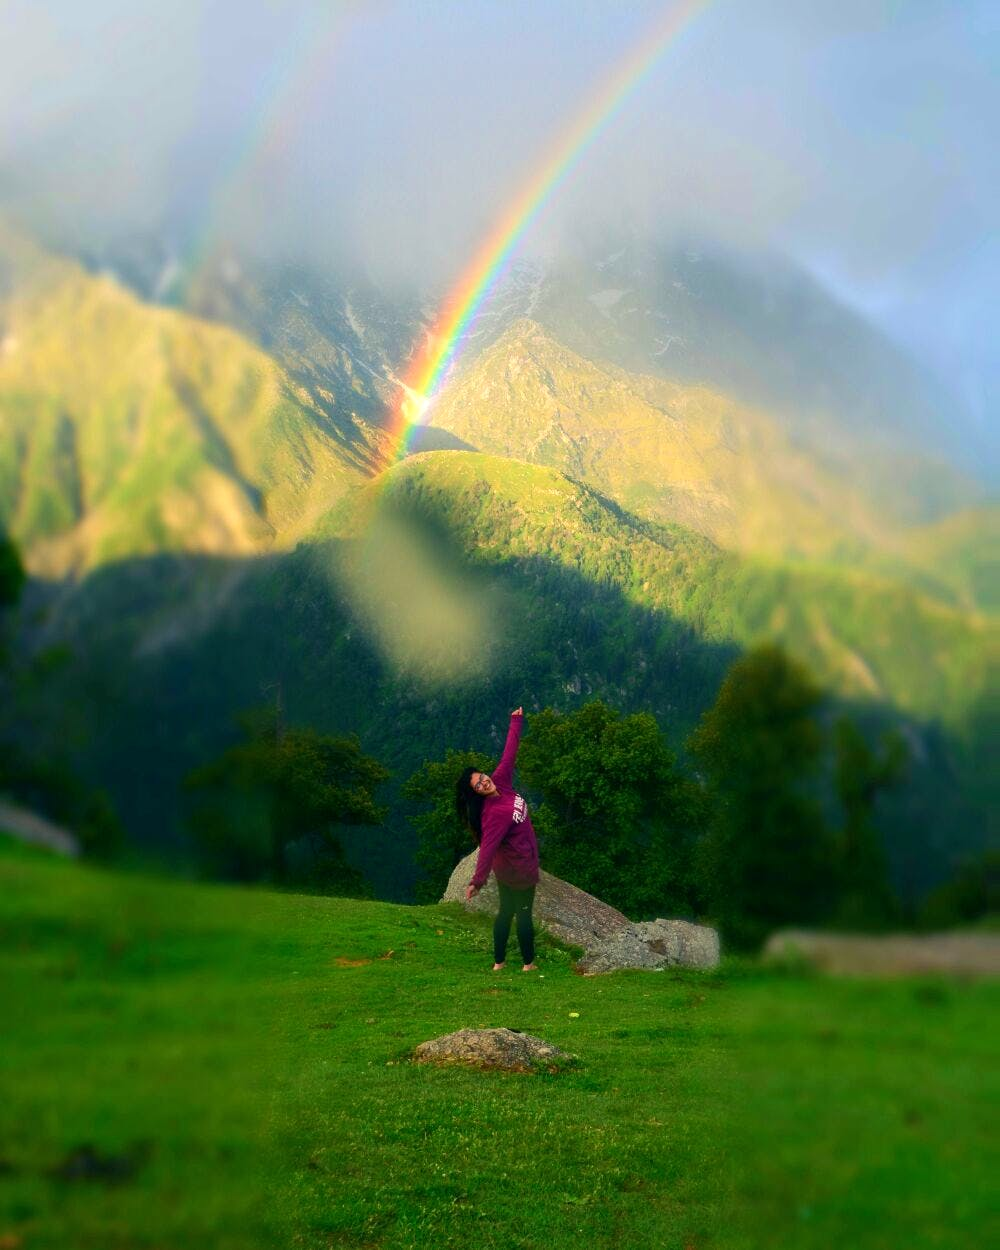 Rainbow,People in nature,Highland,Nature,Sky,Mountainous landforms,Green,Hill,Grassland,Mountain